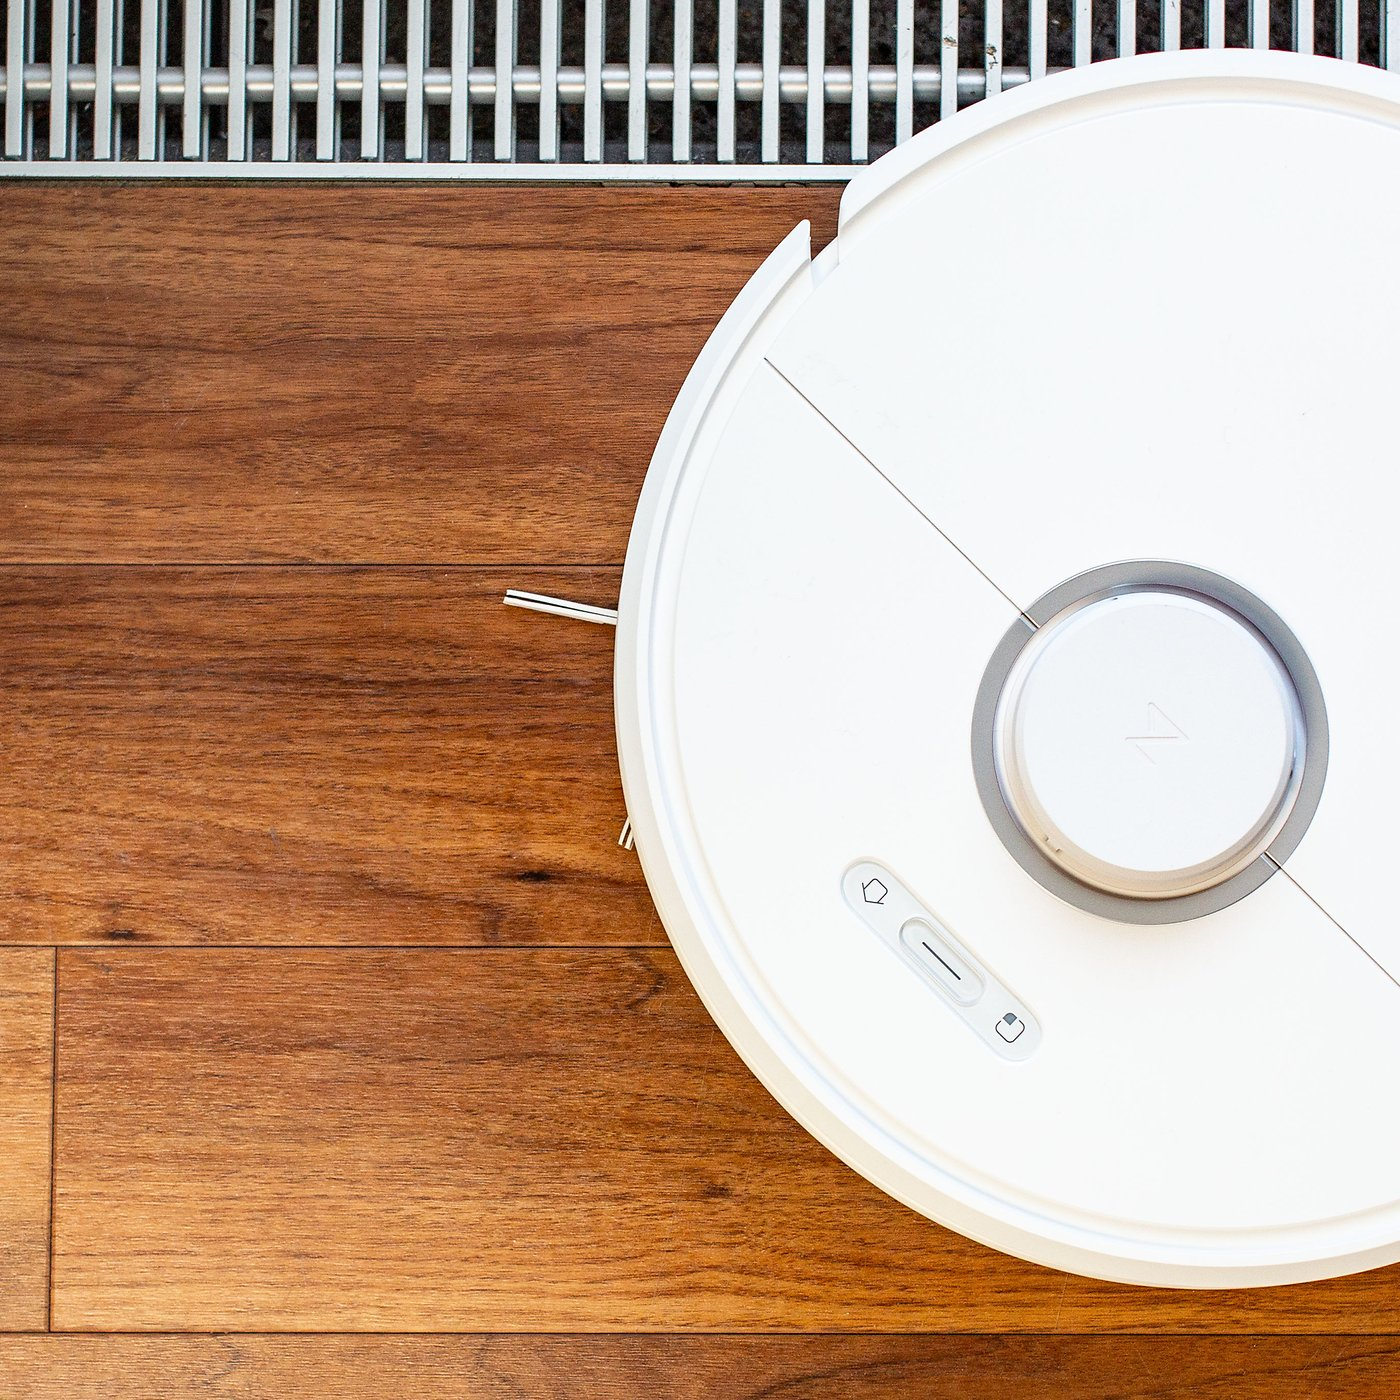 Roborock S6 review: an almost perfect flatmate   AndroidPIT